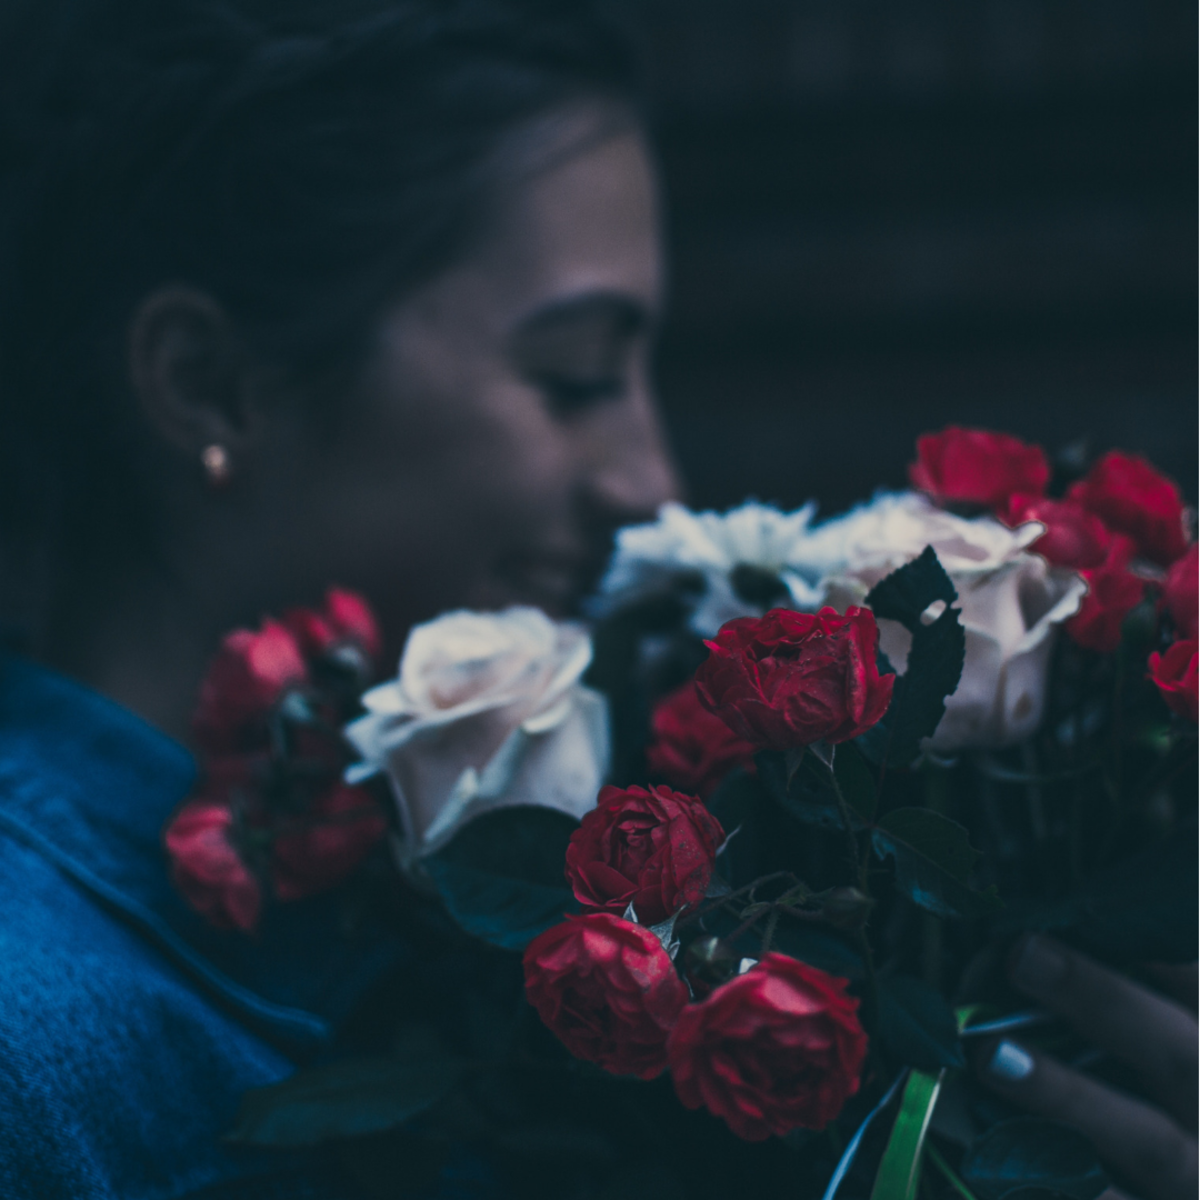 Getting your girlfriend a bouquet of flowers is a great way to spice up your romance.